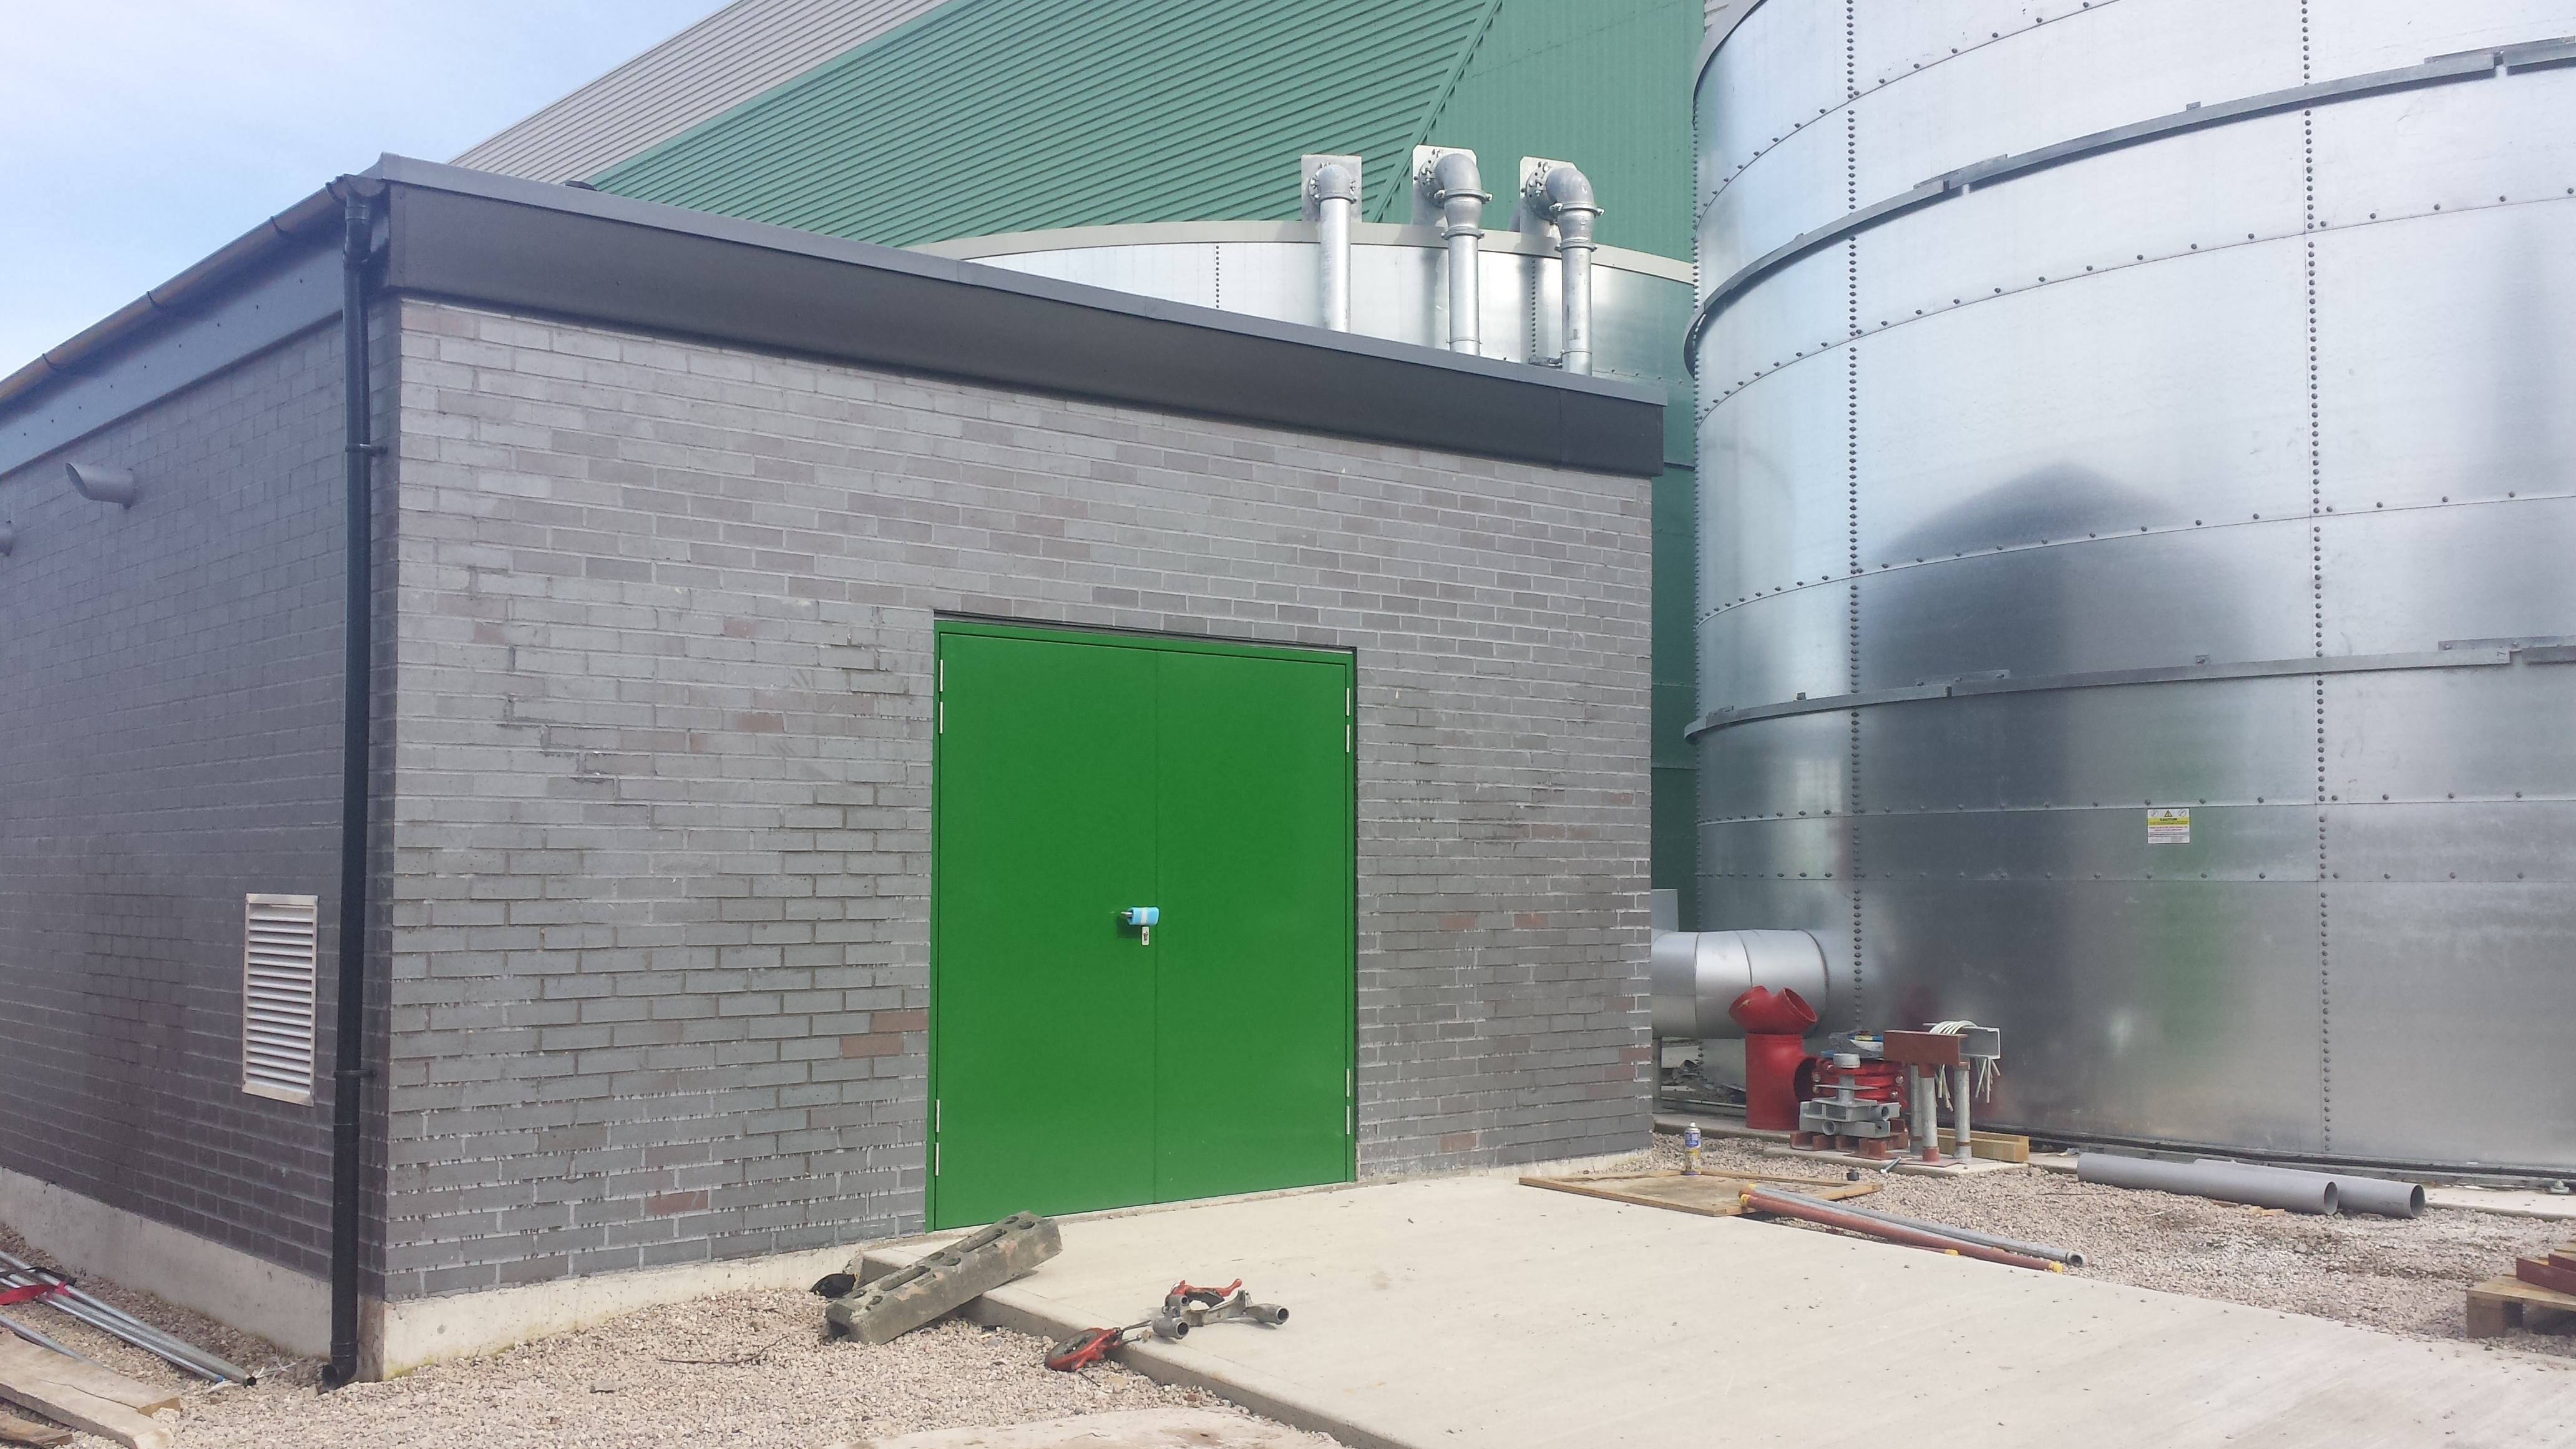 401-power-shed-and-silo